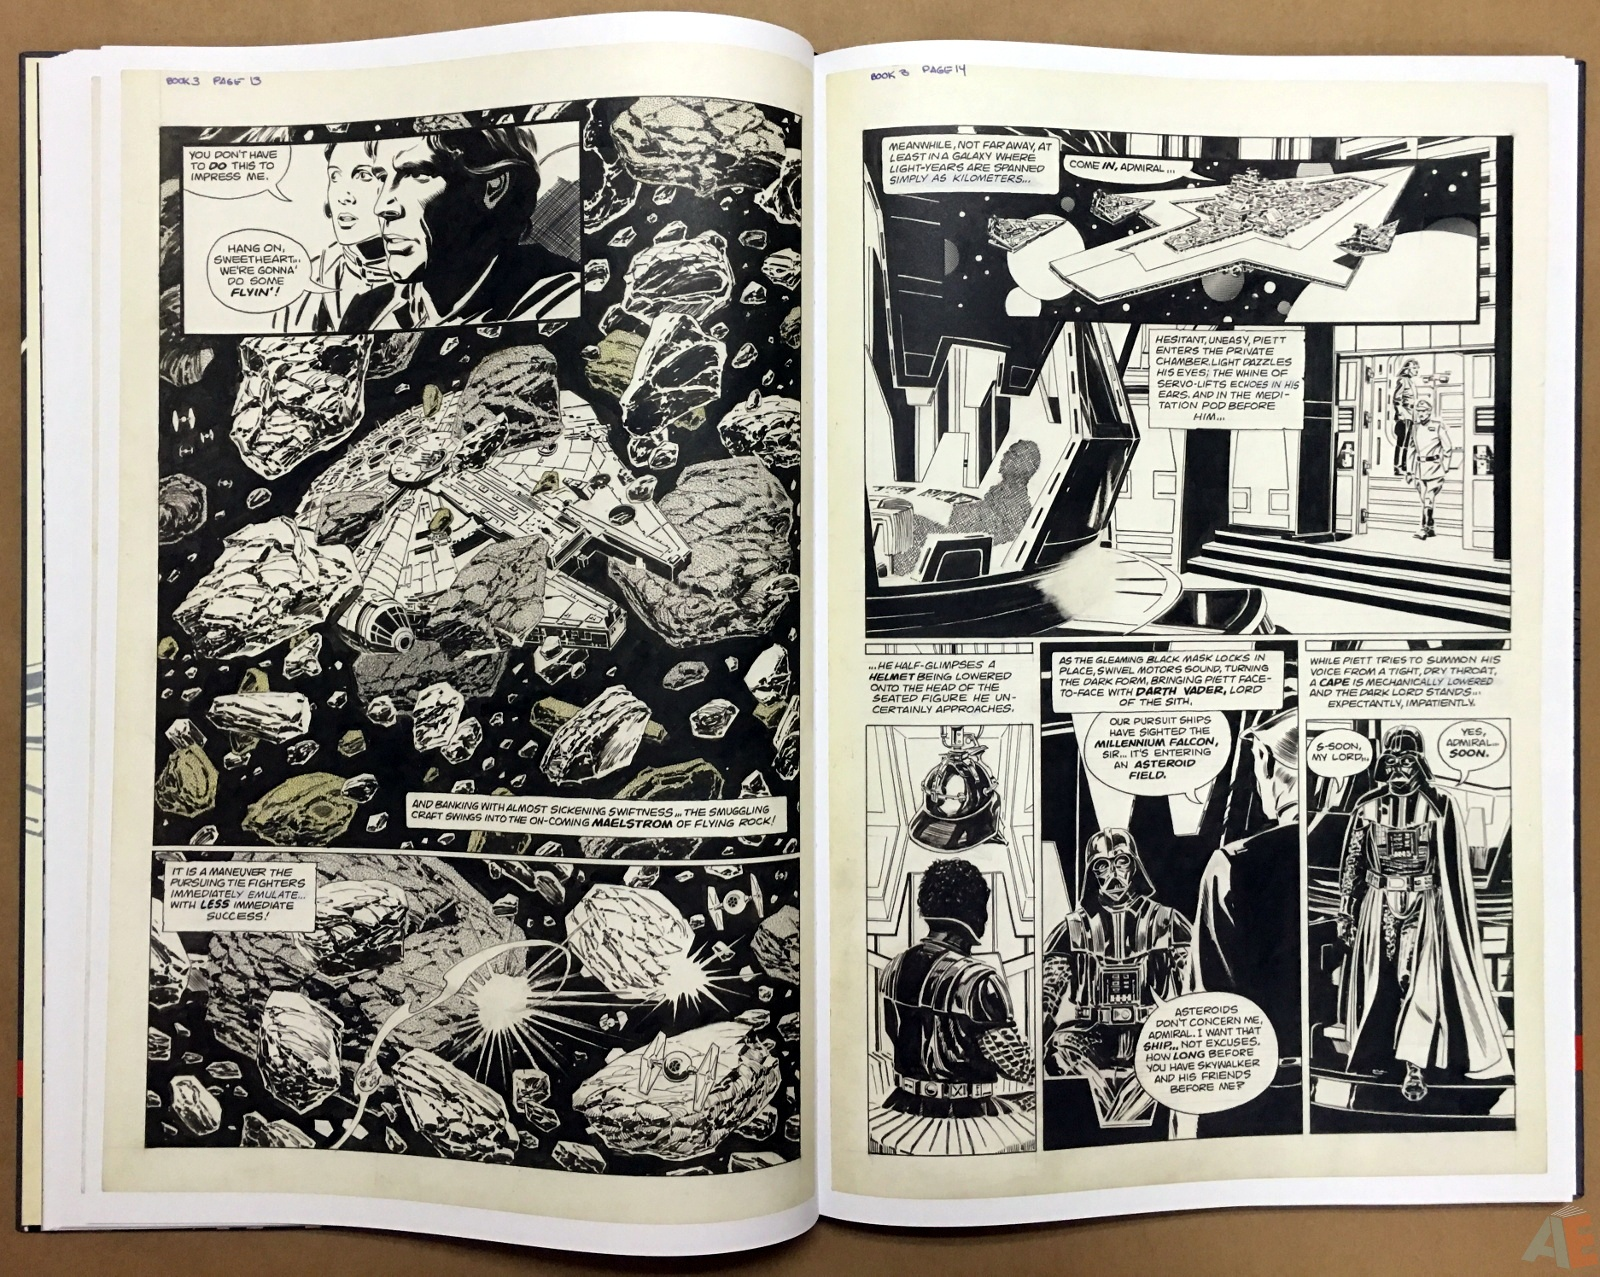 Al Williamson's Star Wars: The Empire Strikes Back Artist's Edition 18